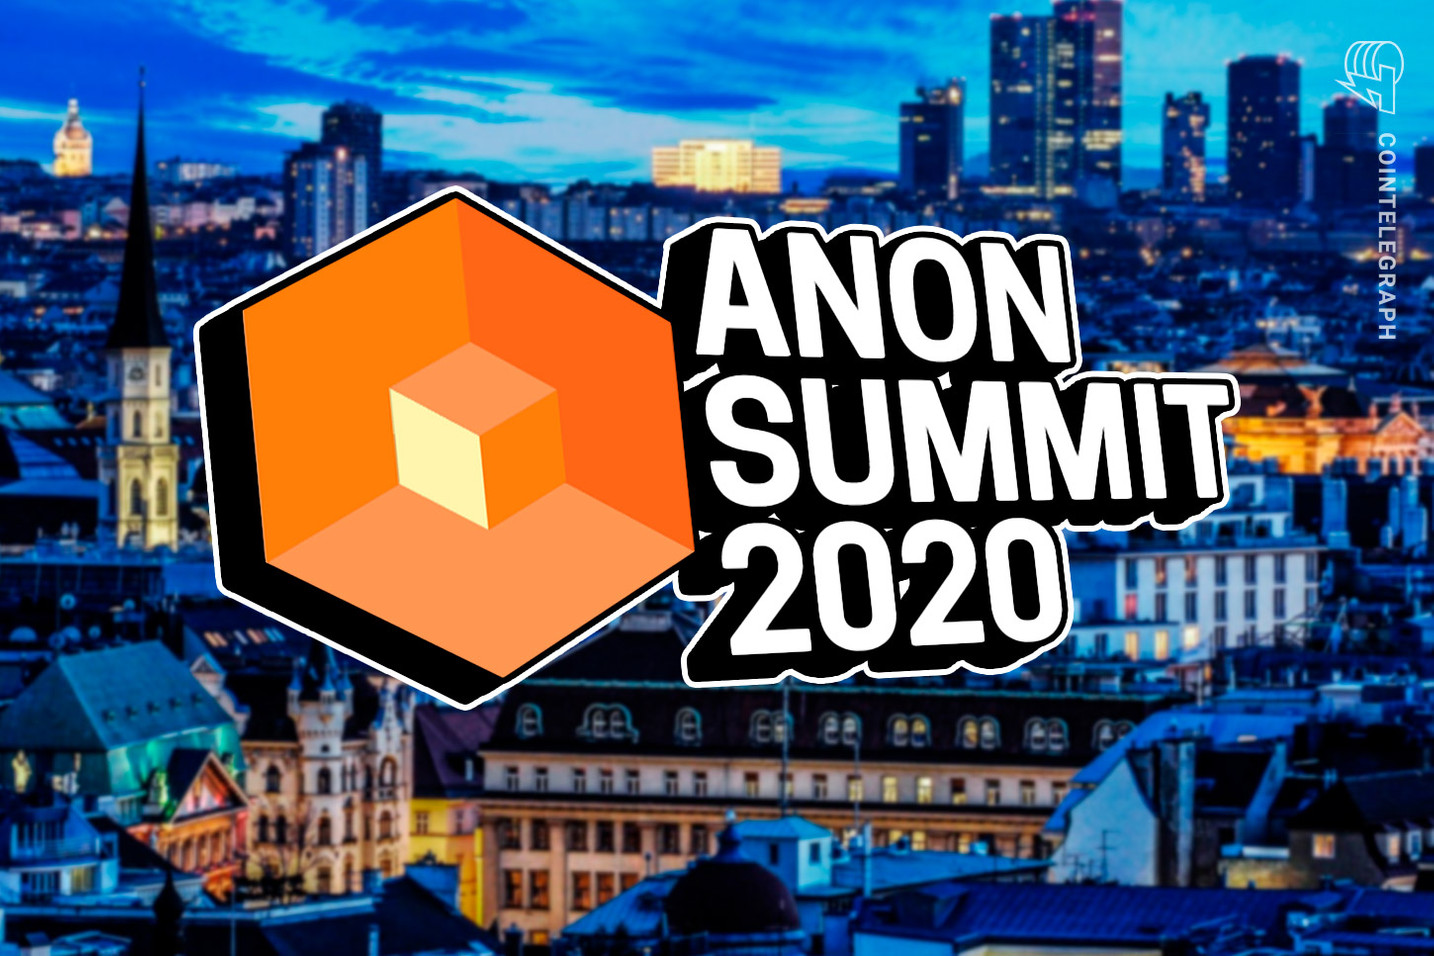 ANON Summit 2020 Prepared to Welcome 6000+ Attendees